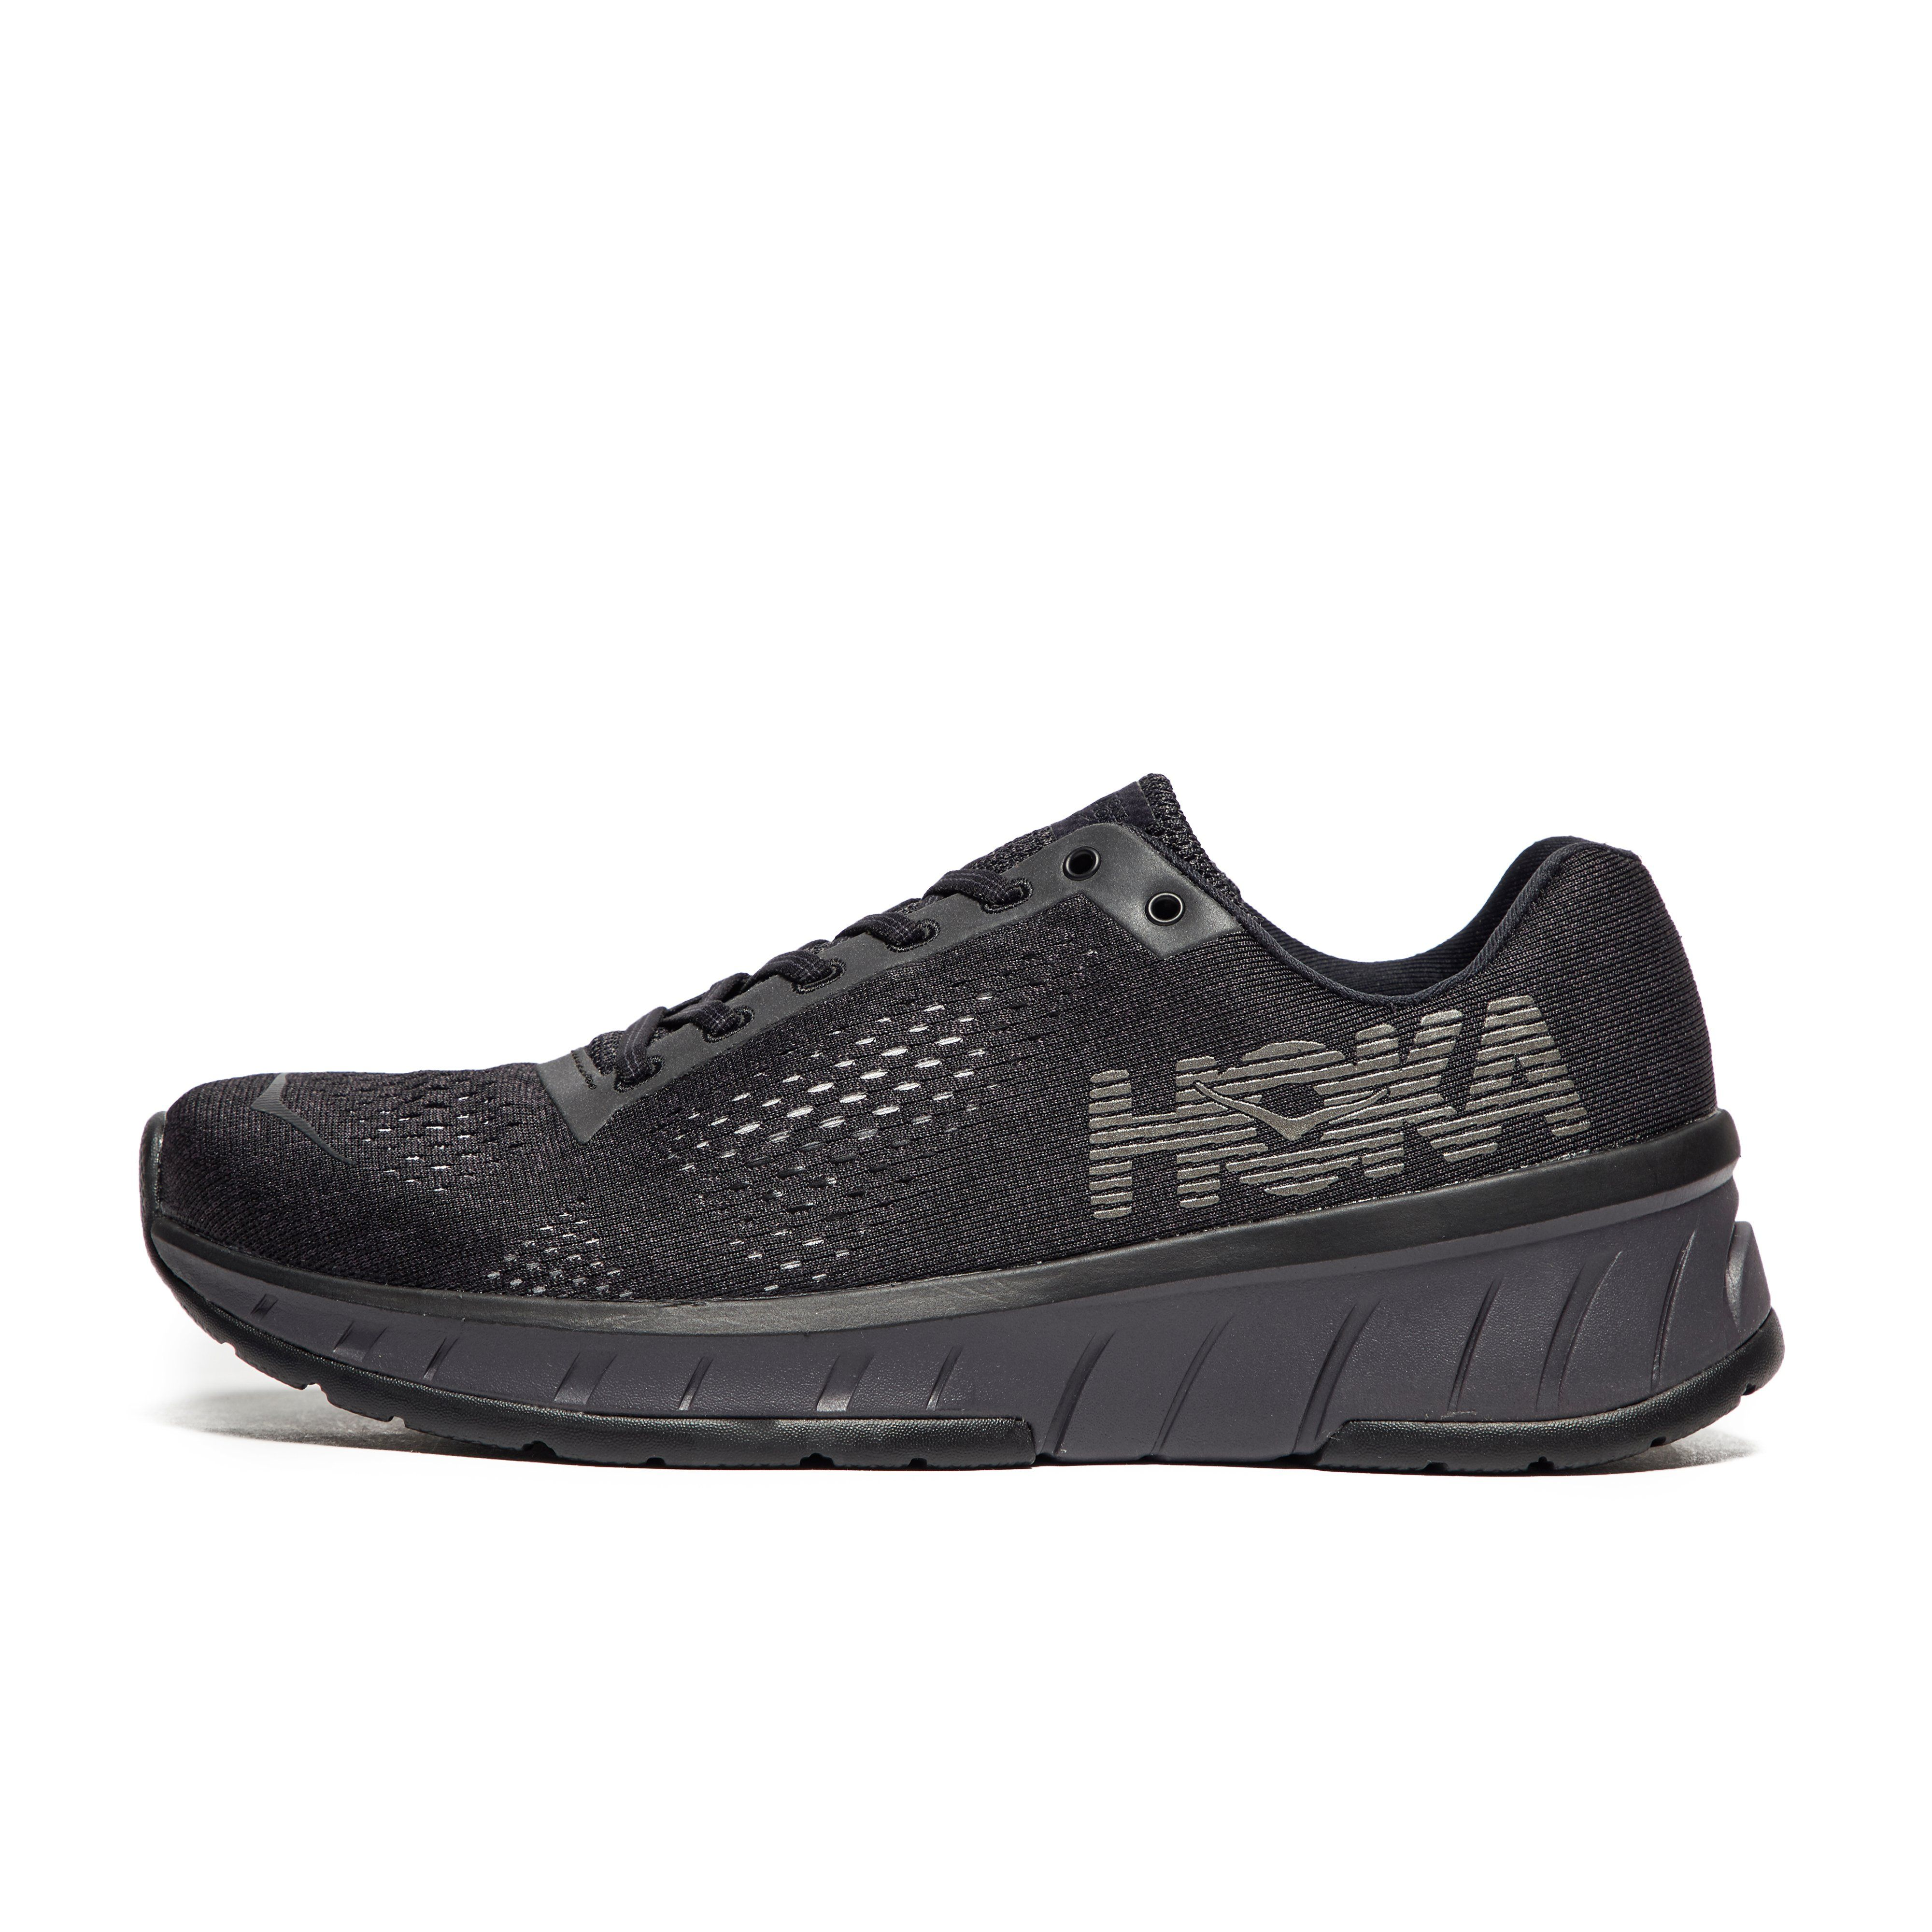 Hoka One One Cavu Fly At Night Men's Running Shoes